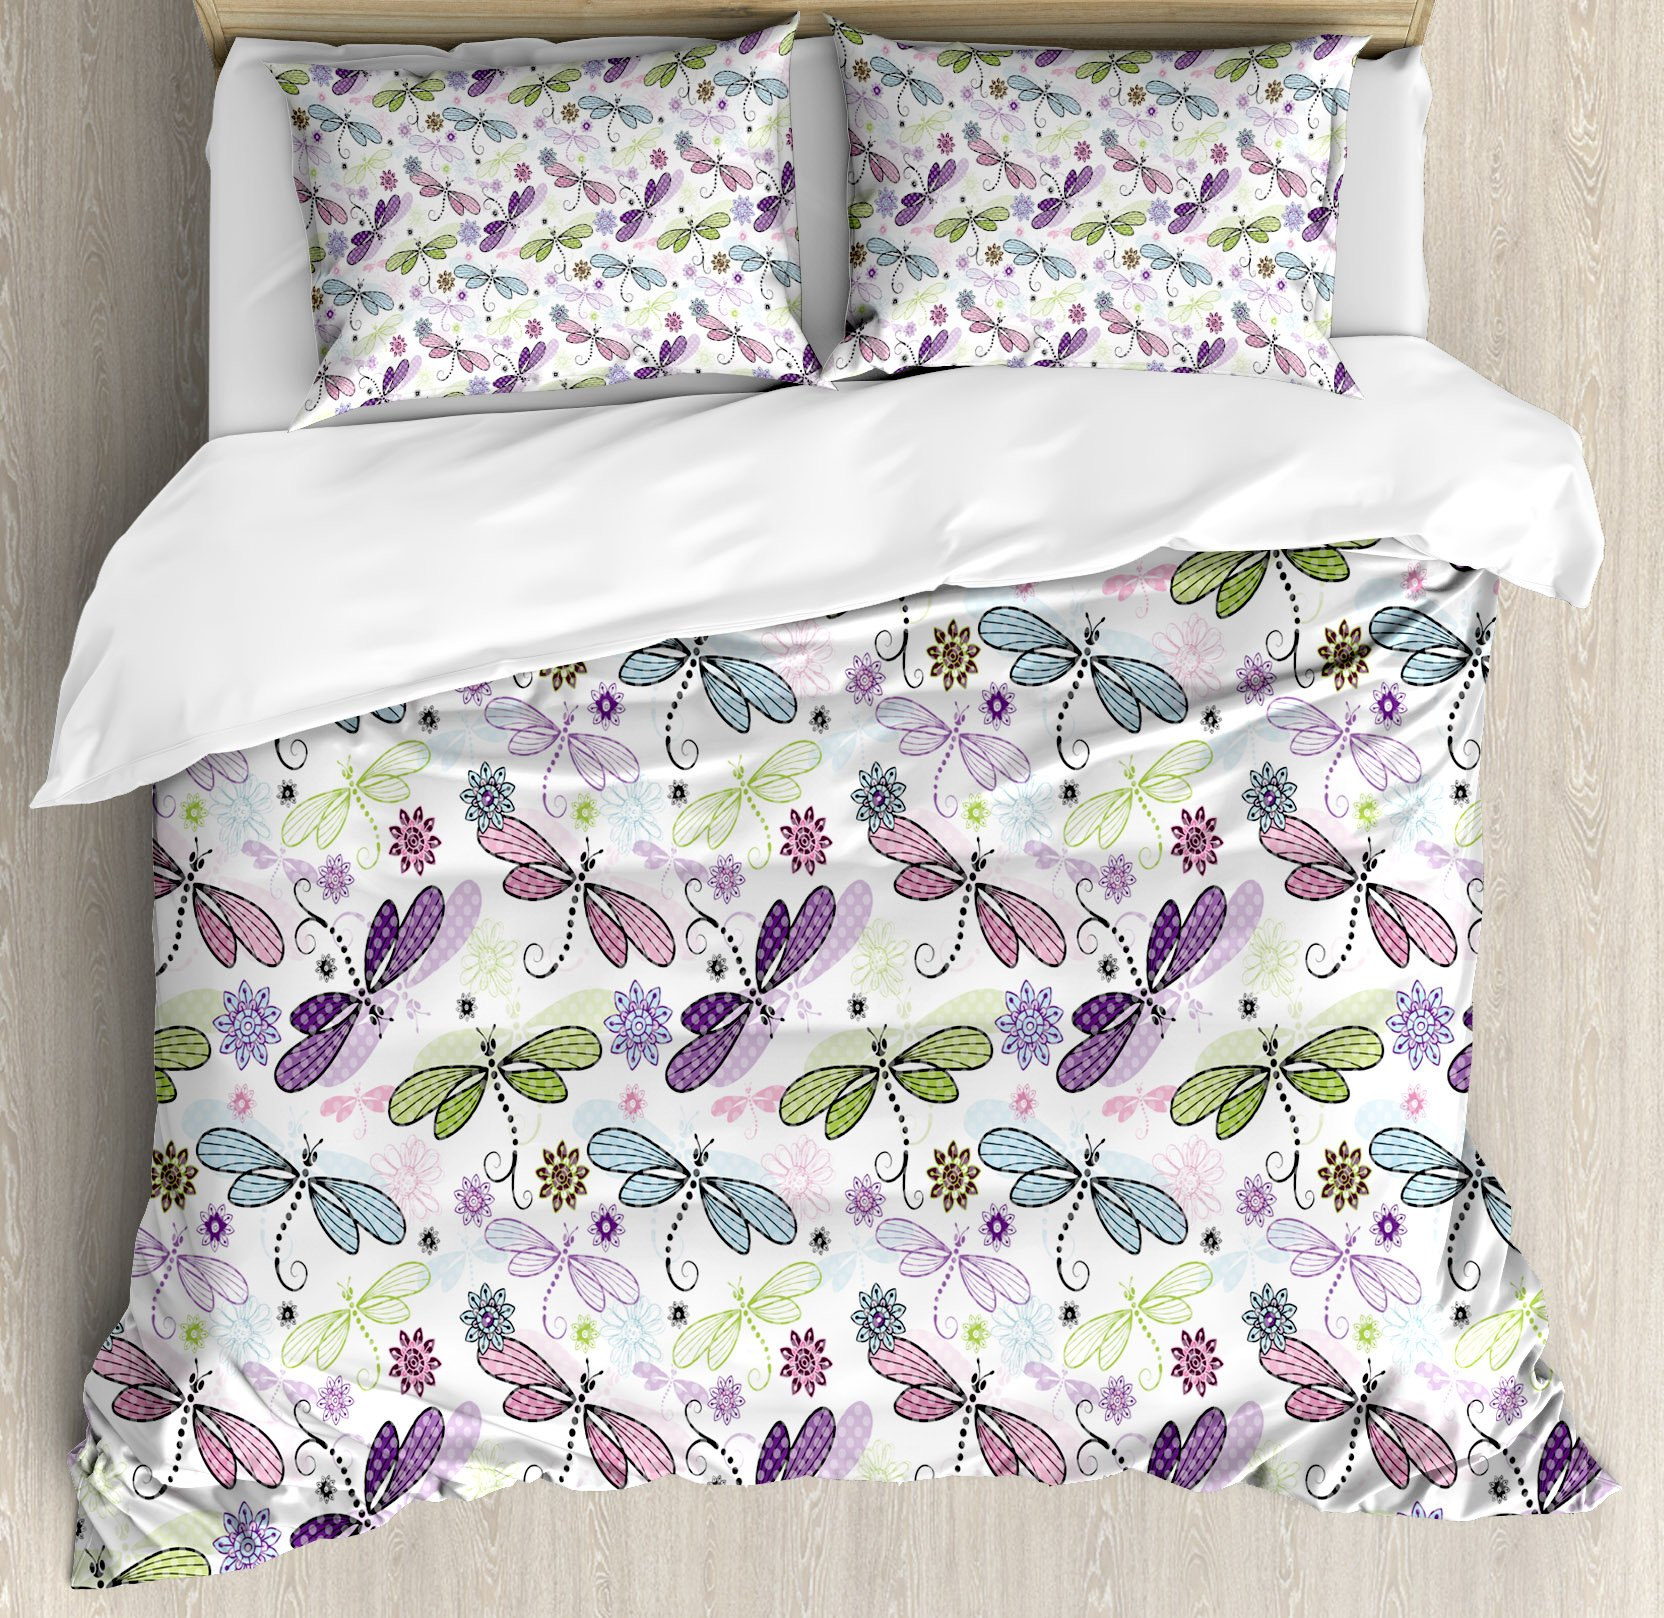 Ambesonne Dragonfly Duvet Cover Set Abstract Bugs With Hippie Style Sketchy Flowers Artwork Decorative 3 Piece Bedding Set With 2 Pillow Shams Queen Size Blue Purple Buy Online In Dominica At Dominica Desertcart Com